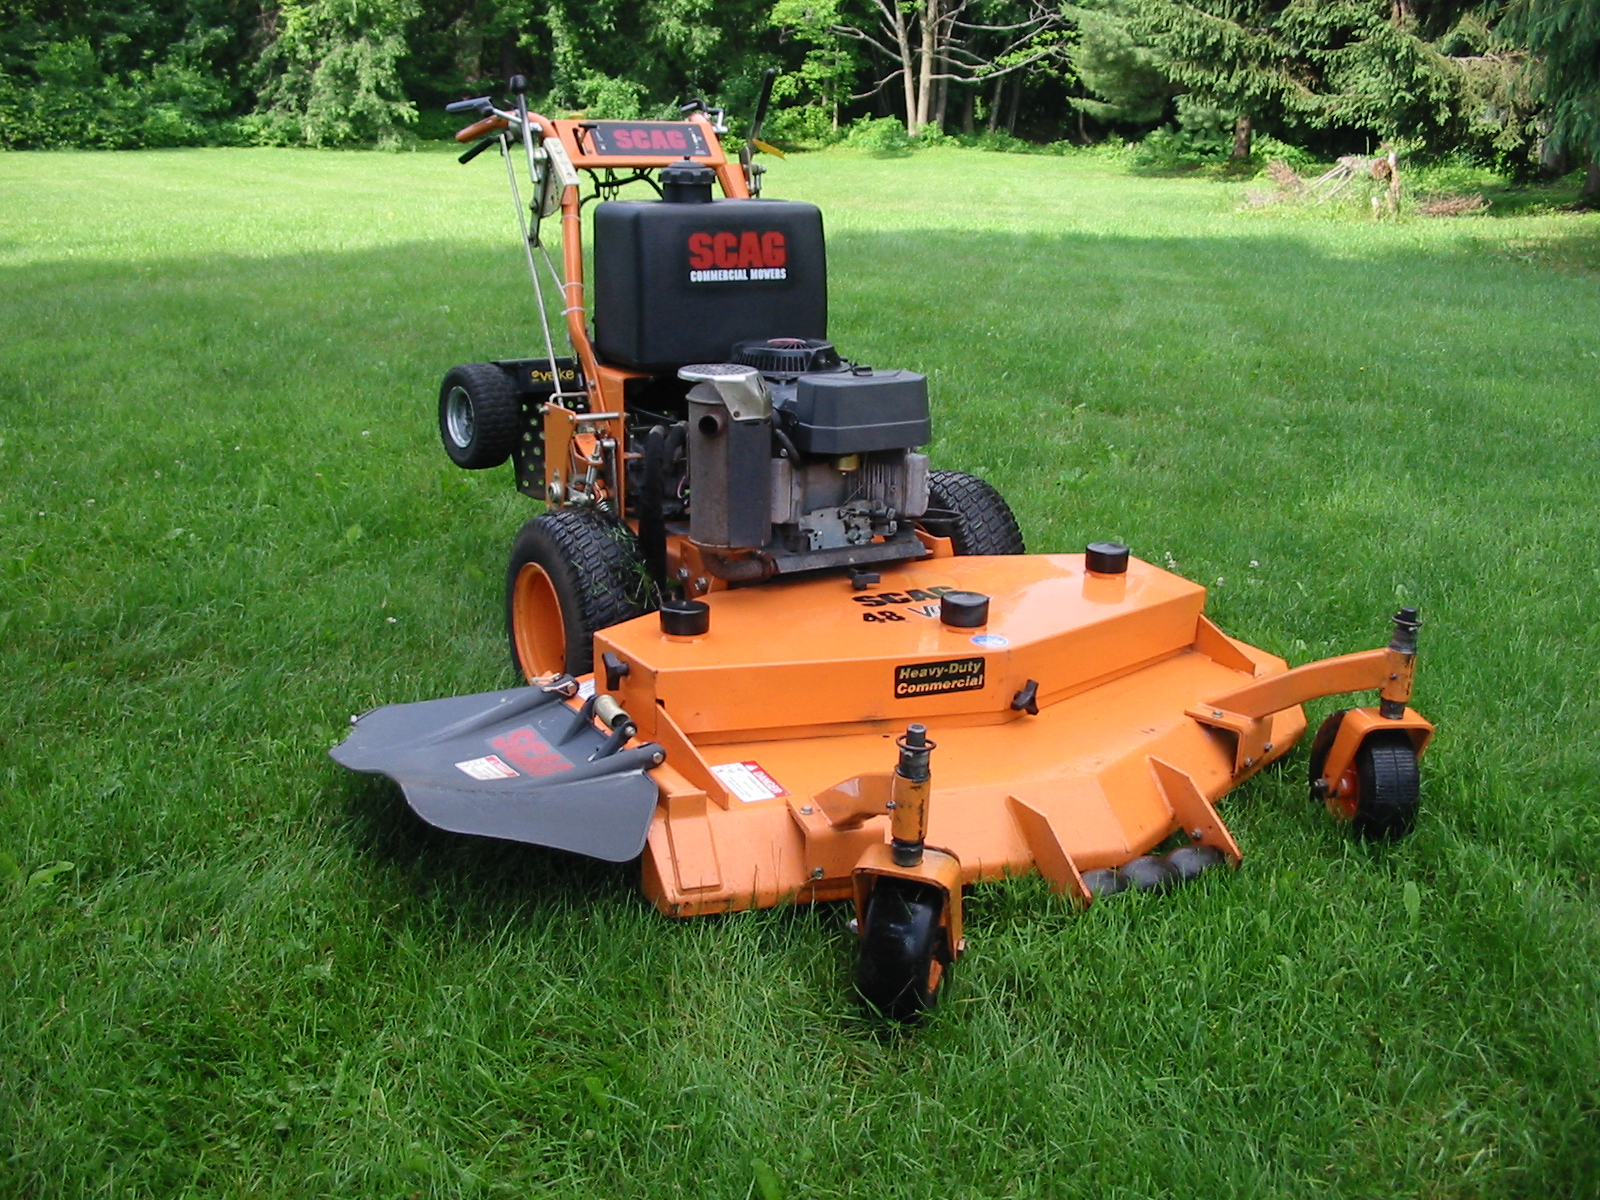 Scag Hydro Drive Walk Mower Free Images At Clker Com